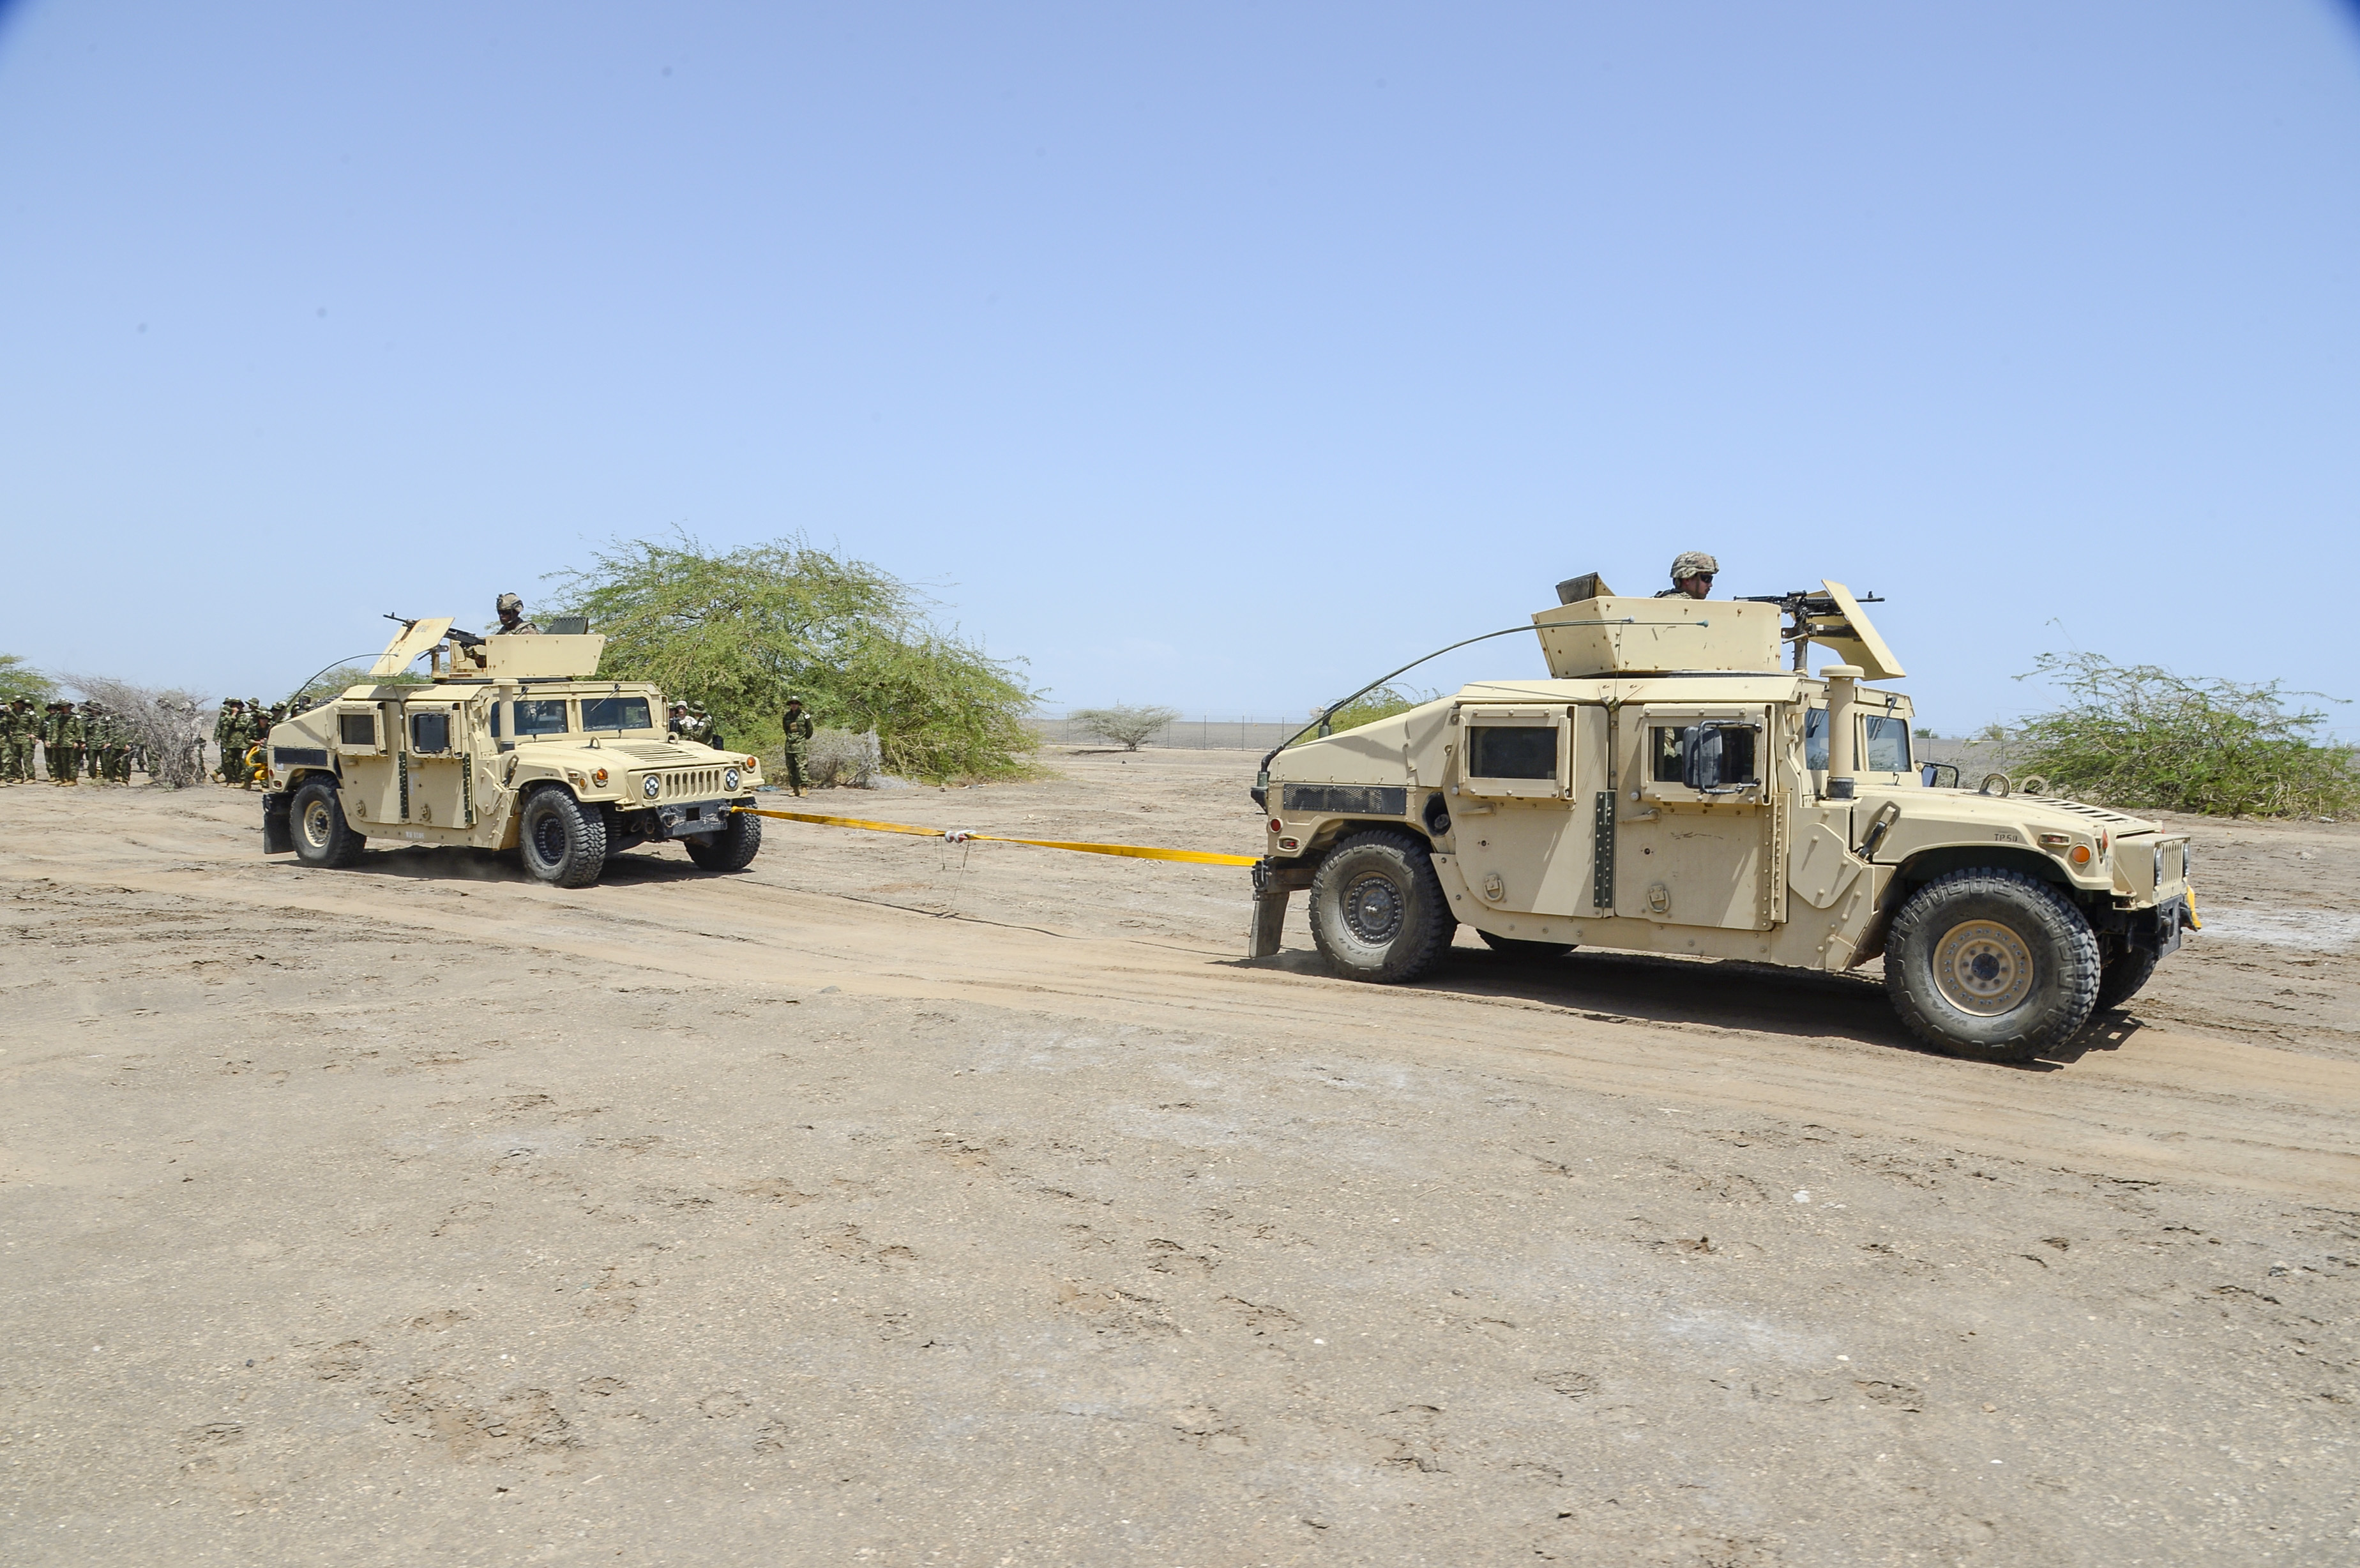 U.S. Army Soldiers conduct convoy evacuation operations in Humvees during a joint coalition exercise at Camp Lemonnier, Djibouti, Sep. 5, 2018. The joint exercise allowed coalition forces from Italy, Japan, France, and Djibouti to learn alongside the U.S. Army and exchane best practices. (U.S. Navy Photo by Mass Communication Specialist 2nd Class Timothy M. Ahearn)